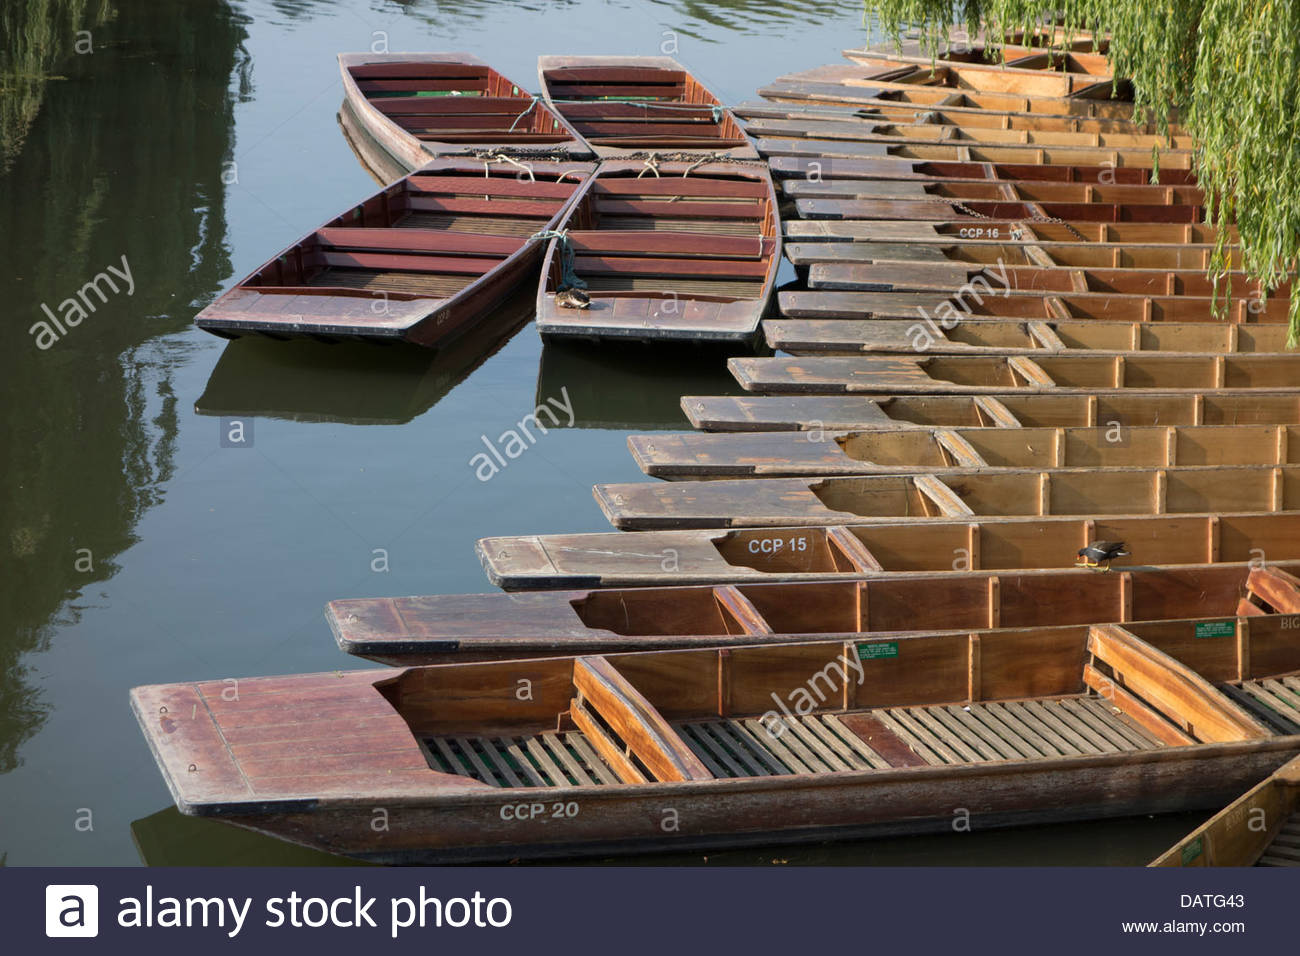 Empty punts on the River Cam in Cambridge in the early morning sunshine, ready for another hot sunny day. - Stock Image